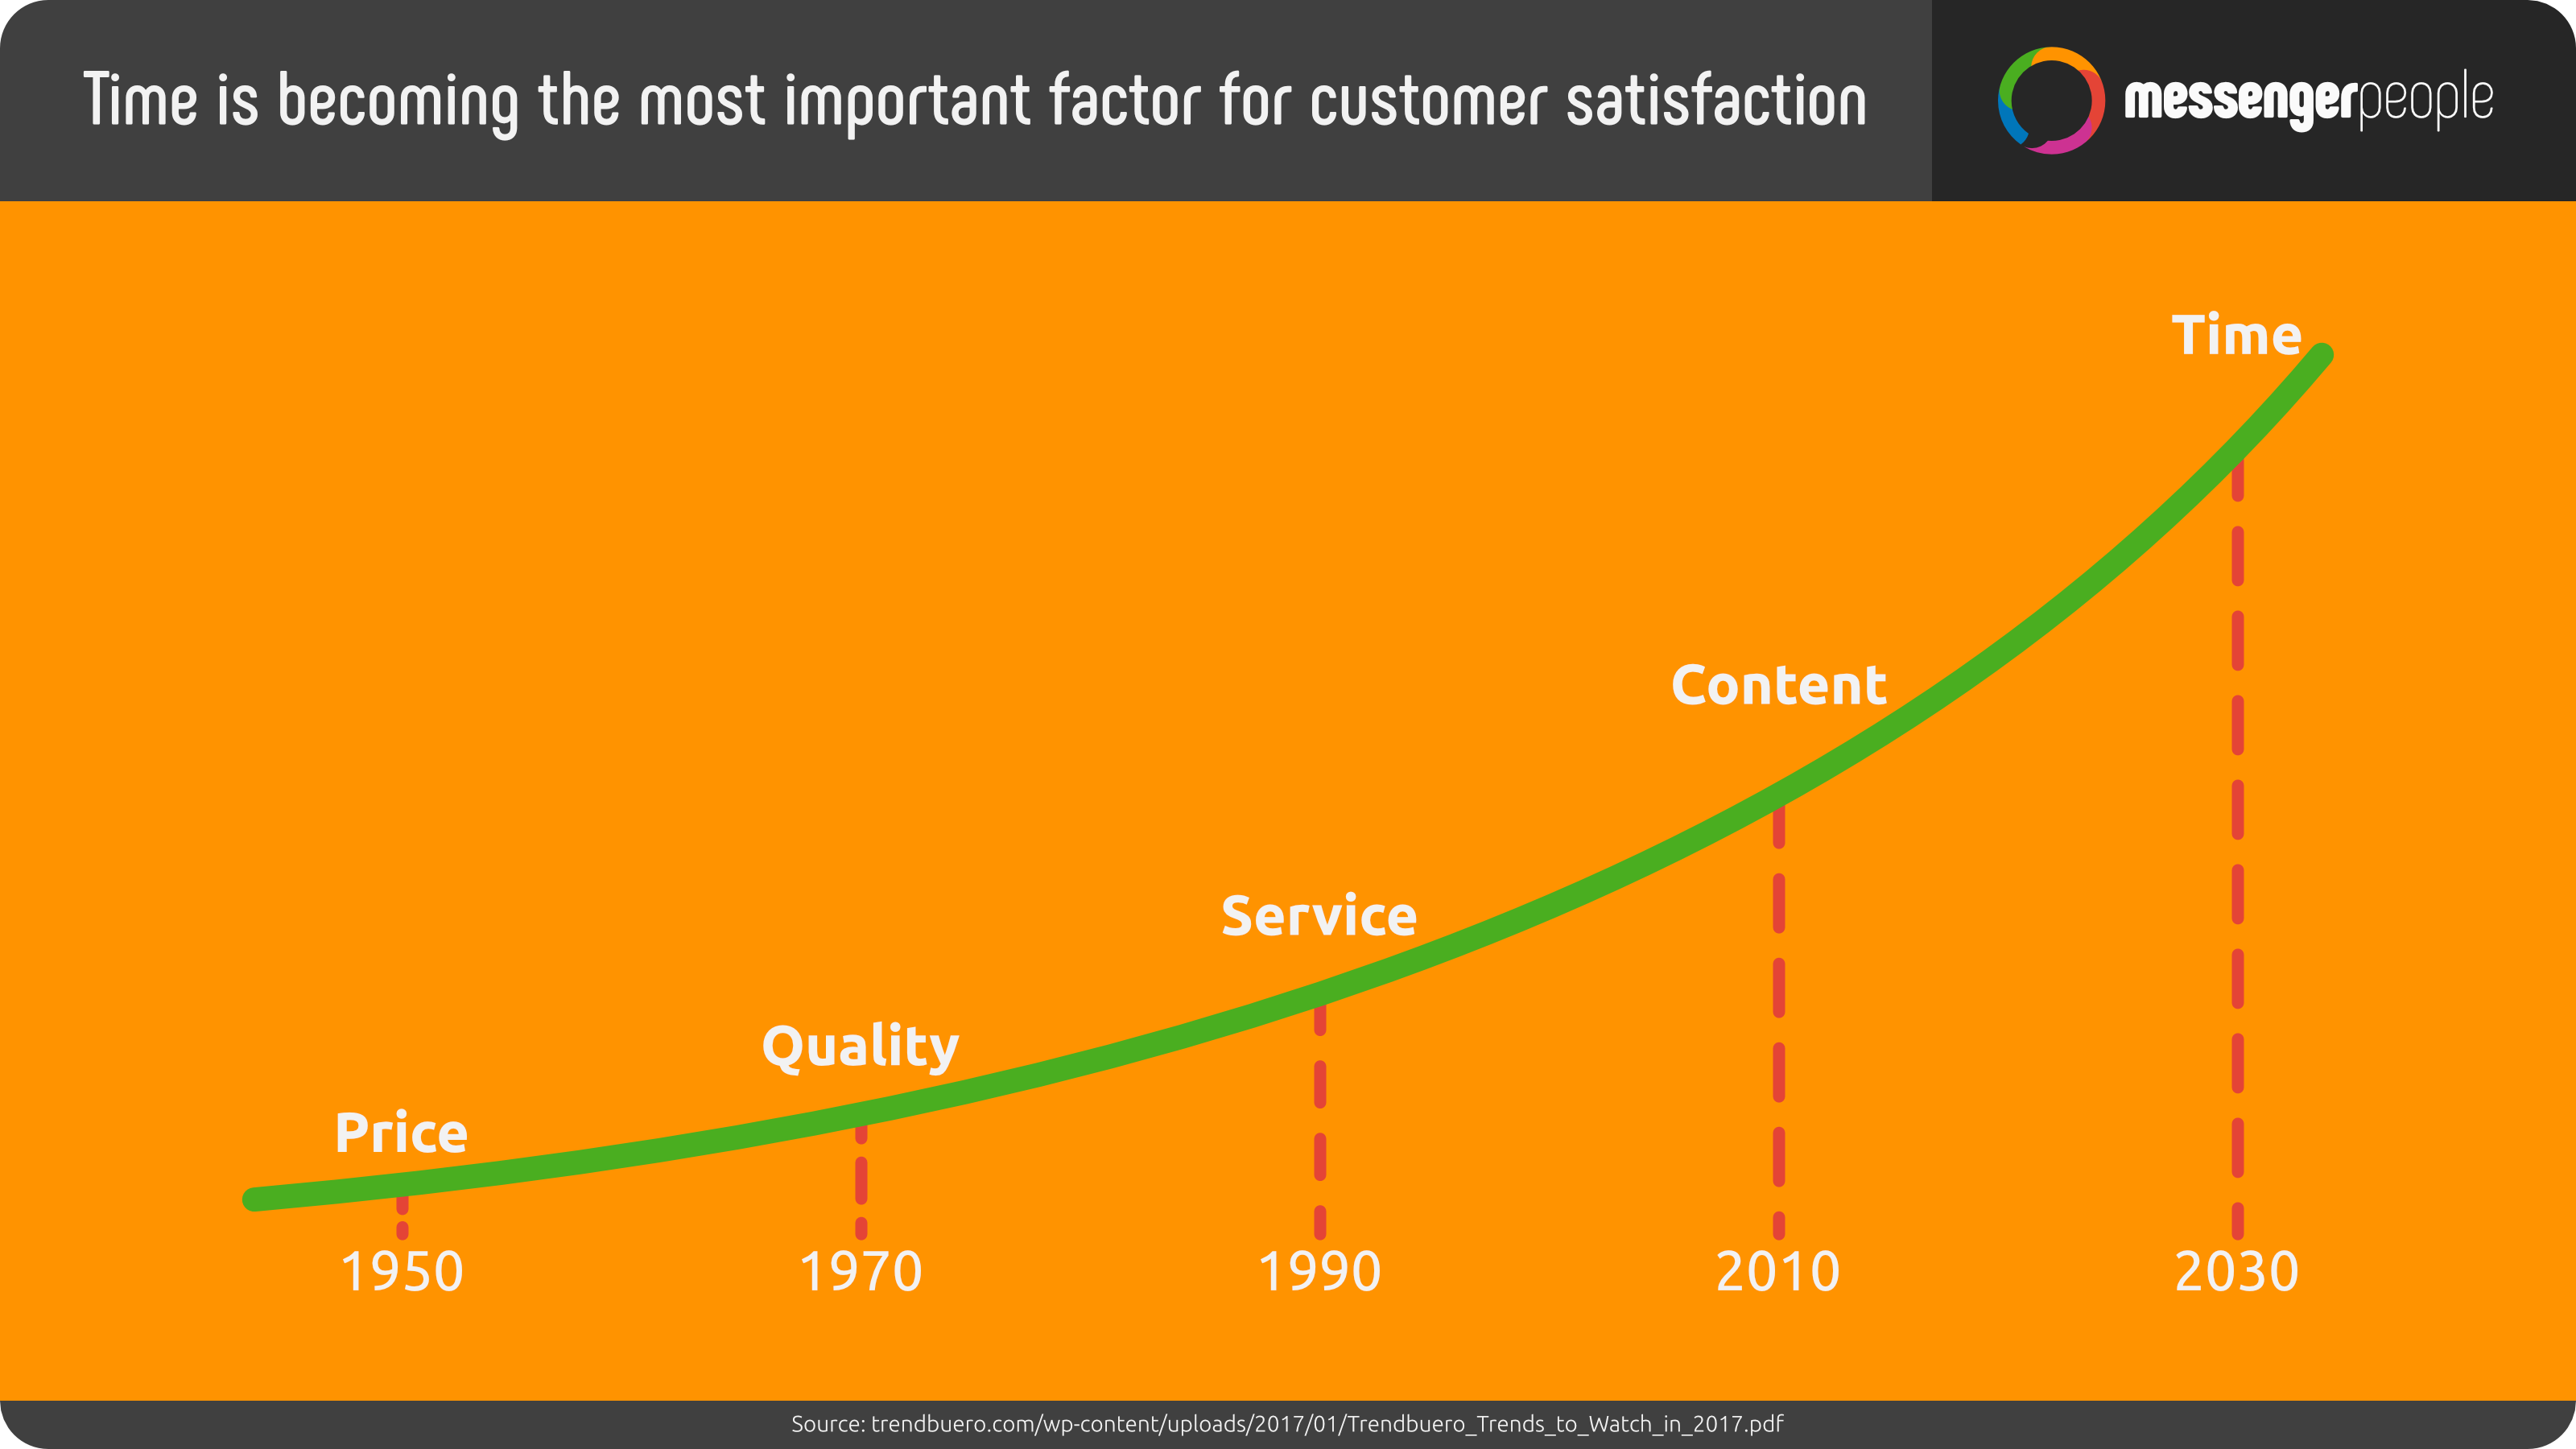 facts-time-factor-customer-satisfaction